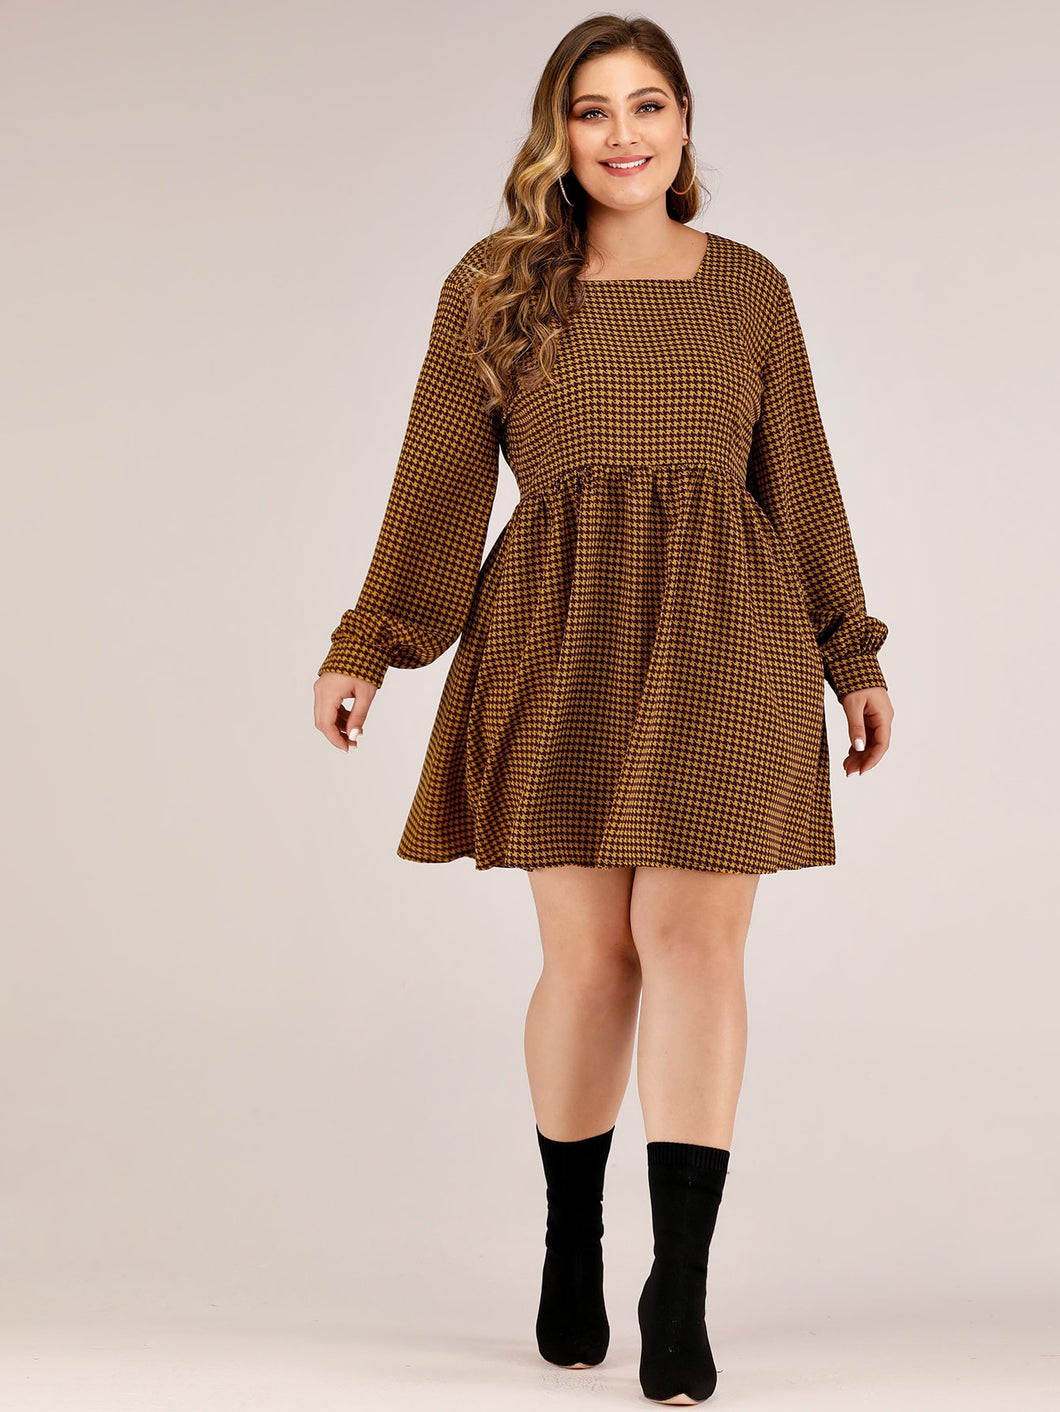 DRESS Plus Square Neck Houndstooth A-line Dress - EK CHIC